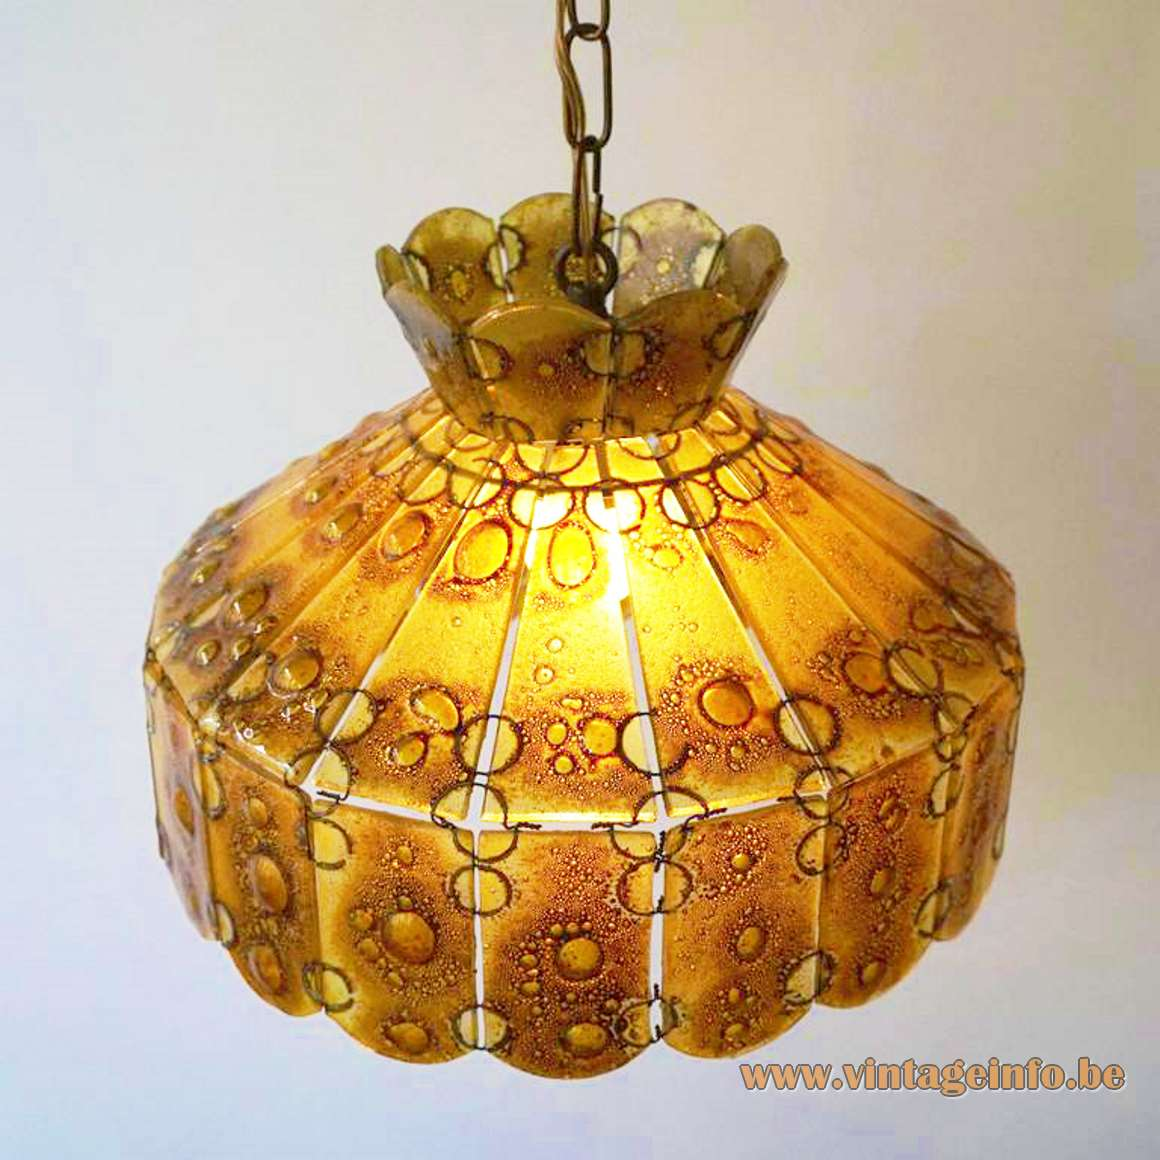 Filipe Derflinger Feder's Glass Chandelier amber mottled glass parts fused with metal Mexico 1960s 1970s